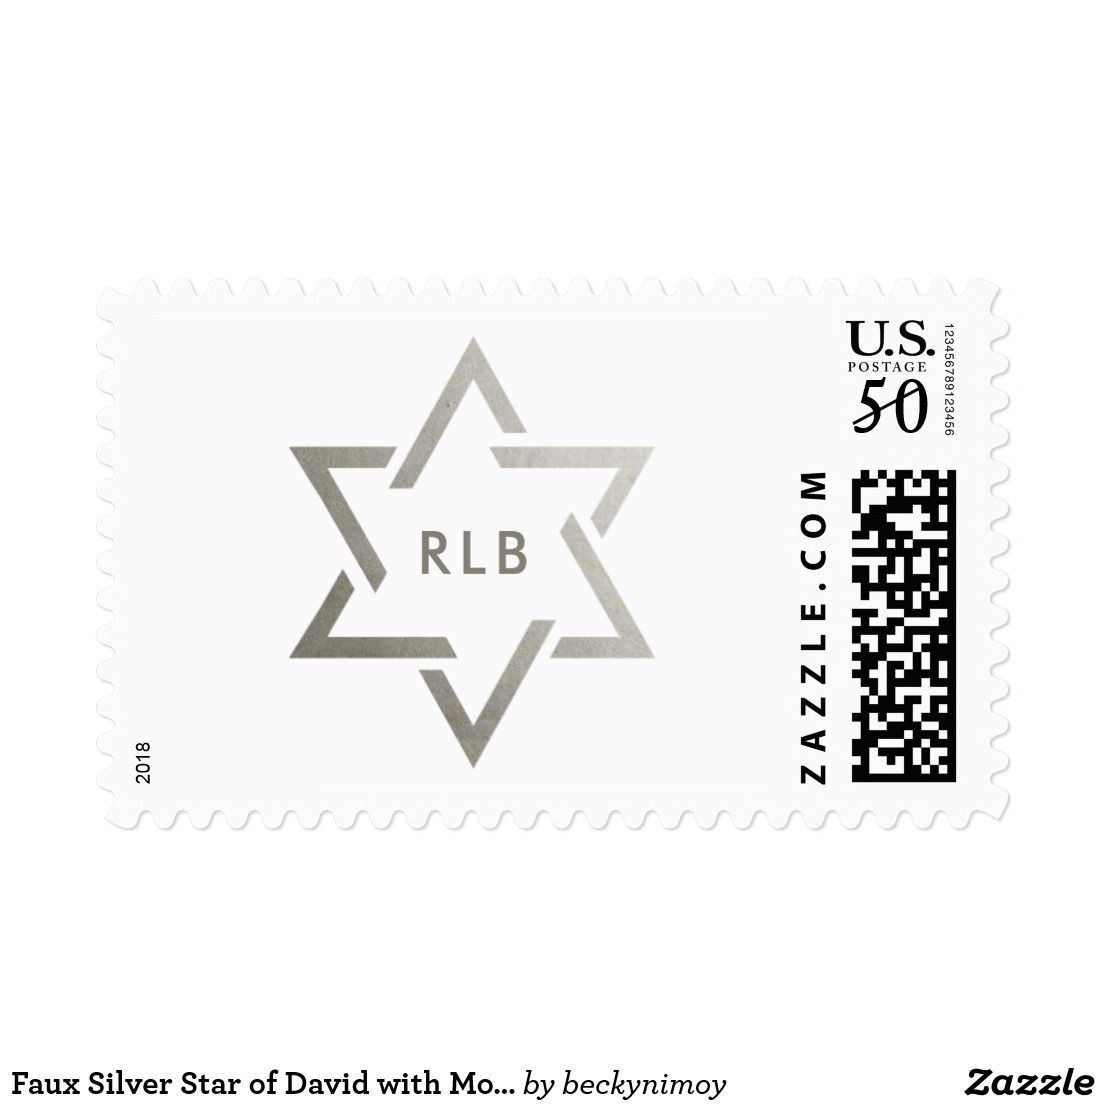 Faux Silver Star of David with Monogram Postage